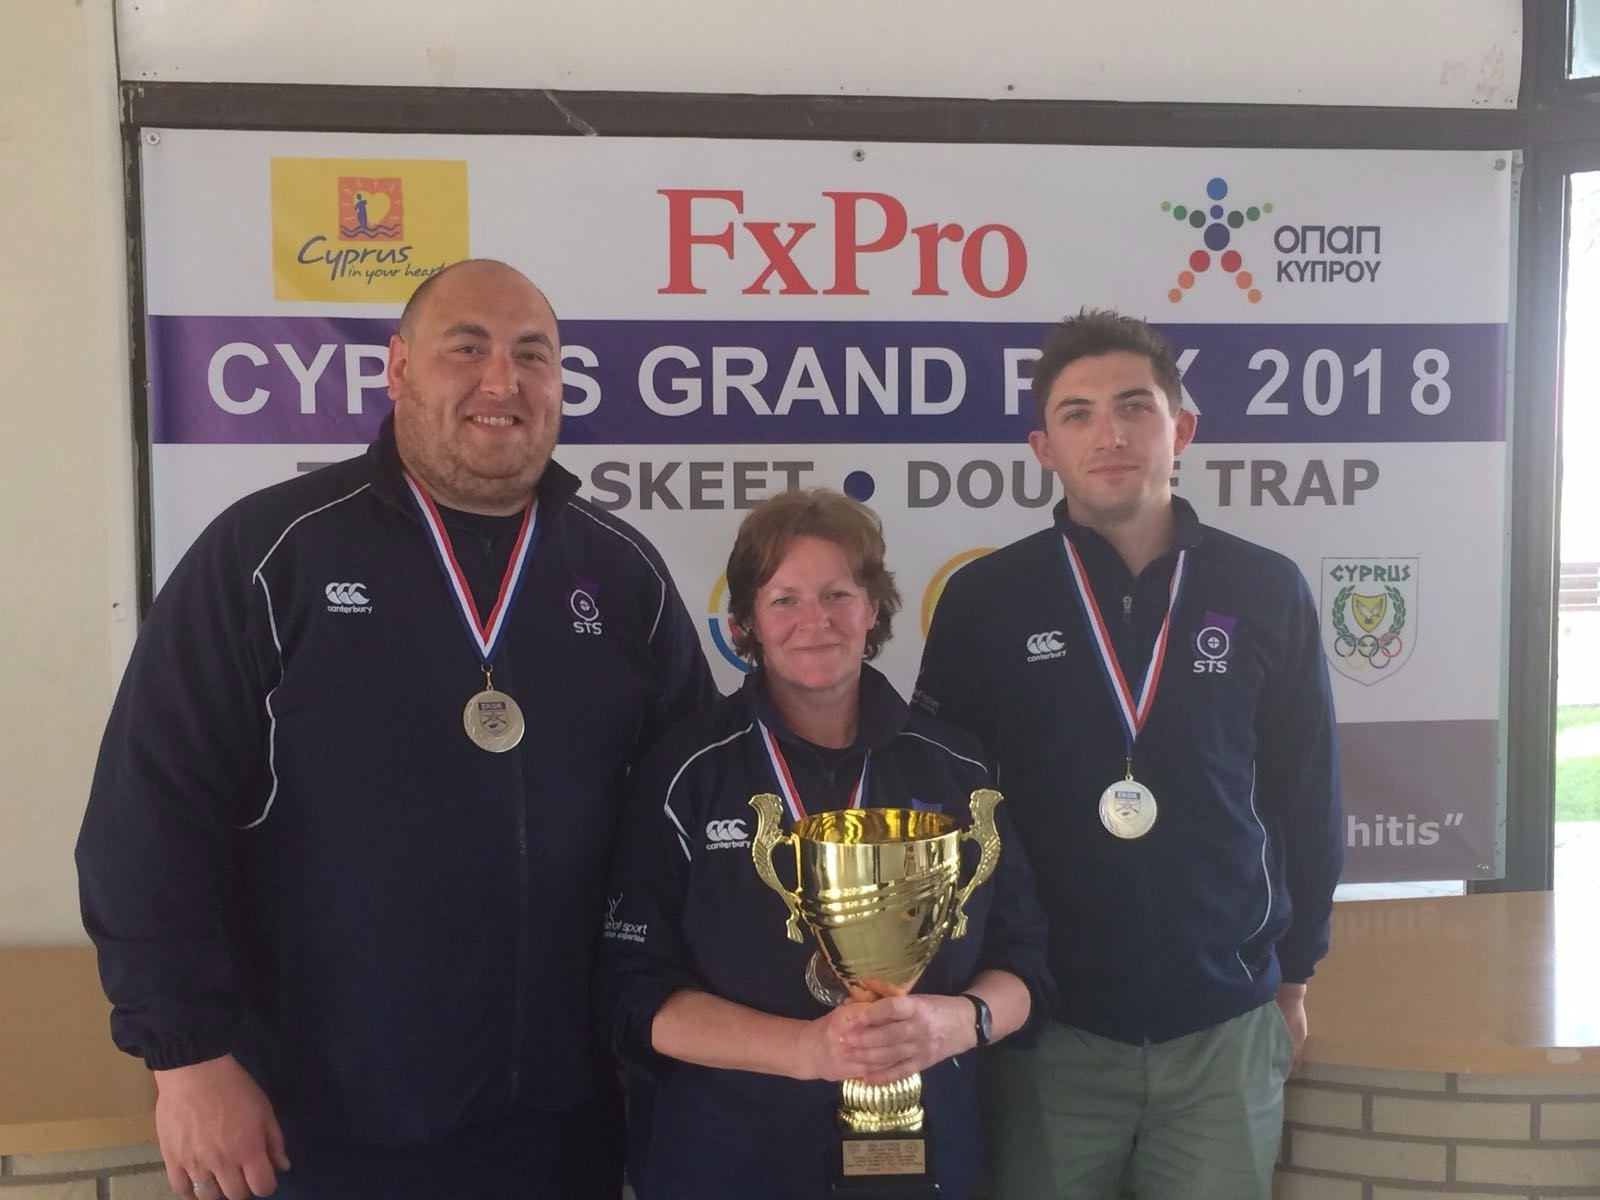 (Left to right) Calum Fraser (7th), Linda Pearson (13th) and David McMath (4th) at the 2018 Cyprus Grand Prix